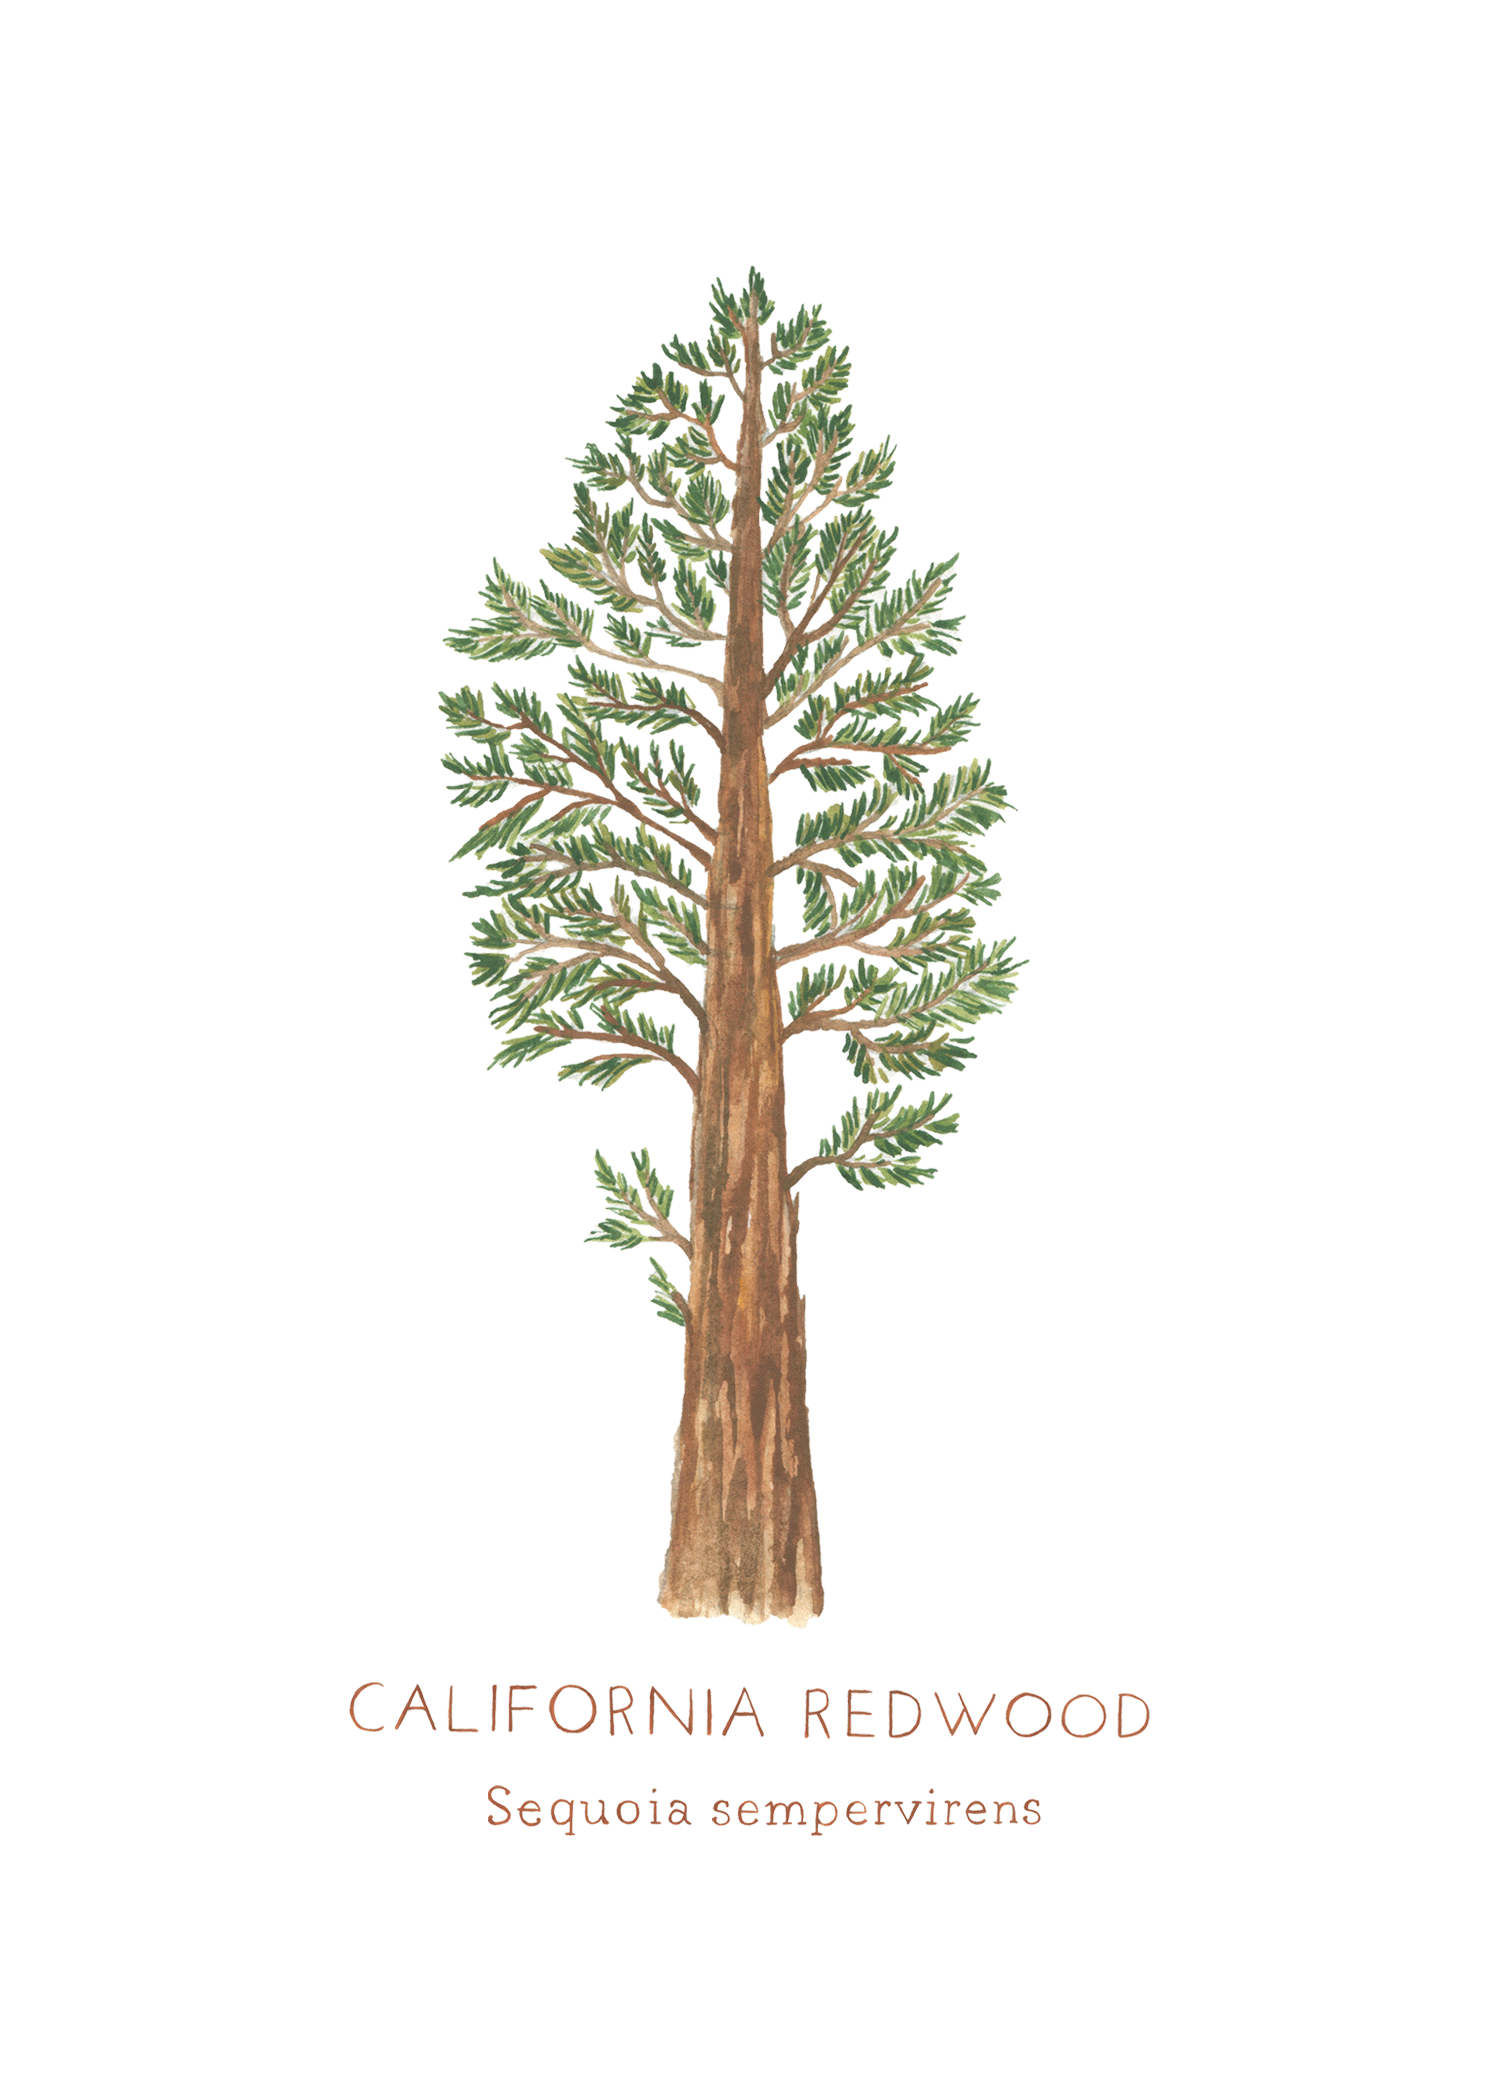 Image Result For California Redwood Tree Illustration Tree Illustration Redwood Tree Sequoia Sempervirens